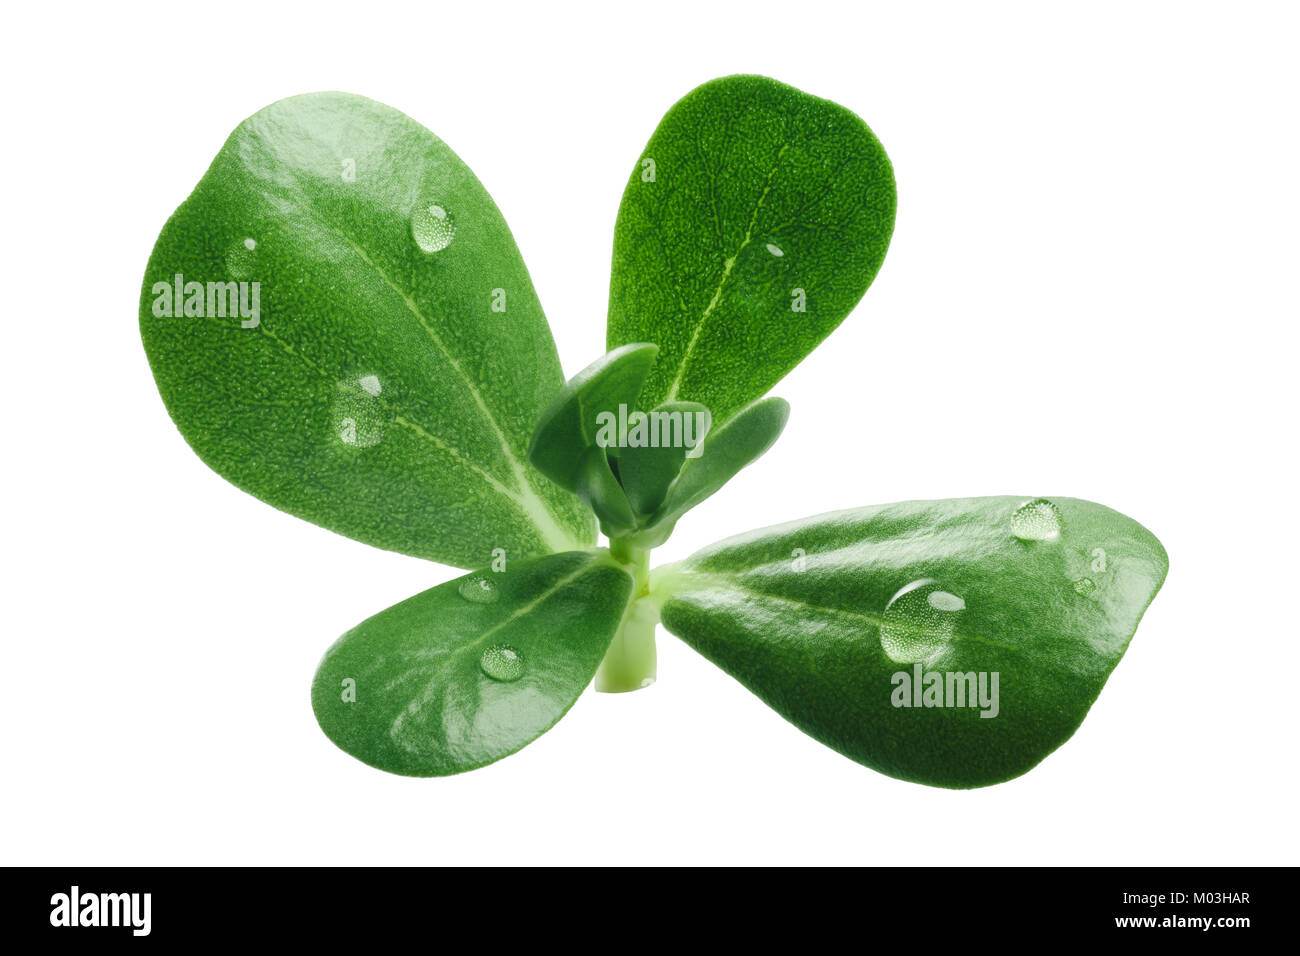 Common purslane (Portulaca oleracea) leaves. Clipping path - Stock Image